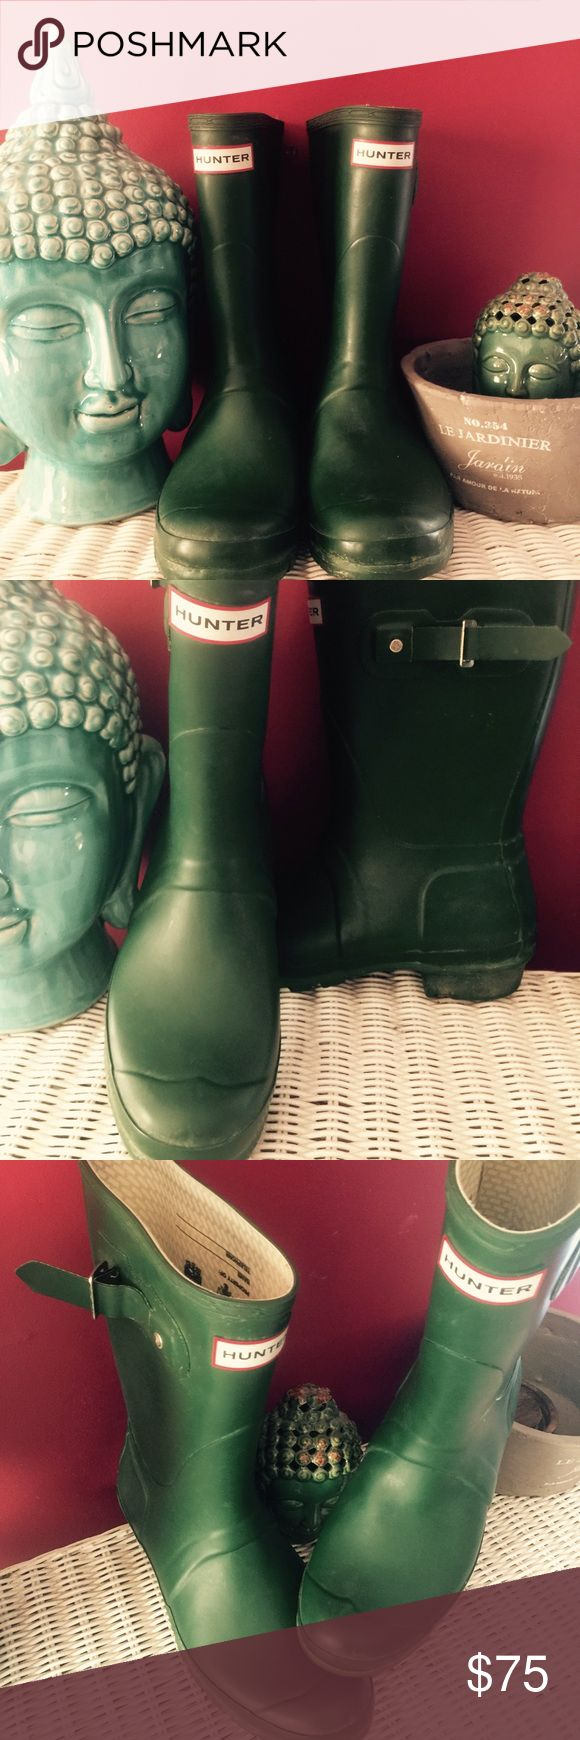 """Original Short"" Hunter Green Boot VERY gently worn original short Hunter rain boots in the classic Hunter Green color! Interior labels are UNTOUCHED so you can personalize them to your own liking. Perfect for the nasty rainy months ahead! Open to offers!! Hunter Boots Shoes Winter & Rain Boots"